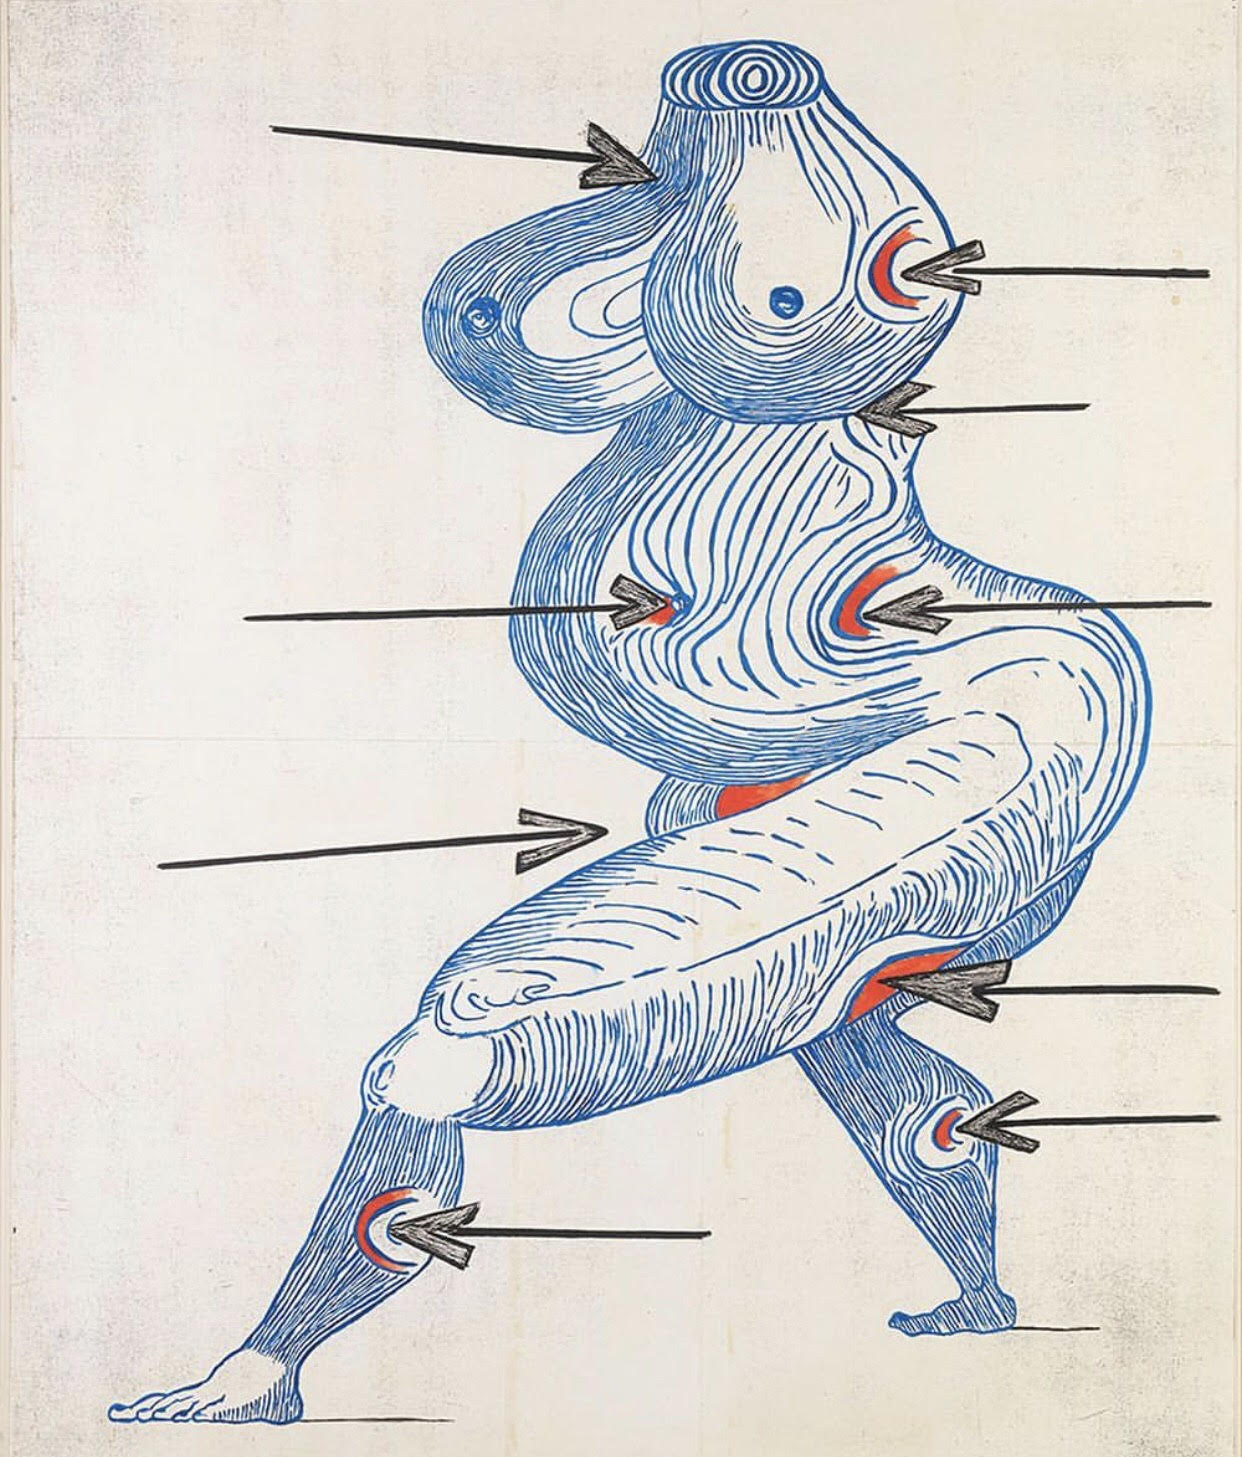 Ste. Sébastienne by Louise Bourgeois